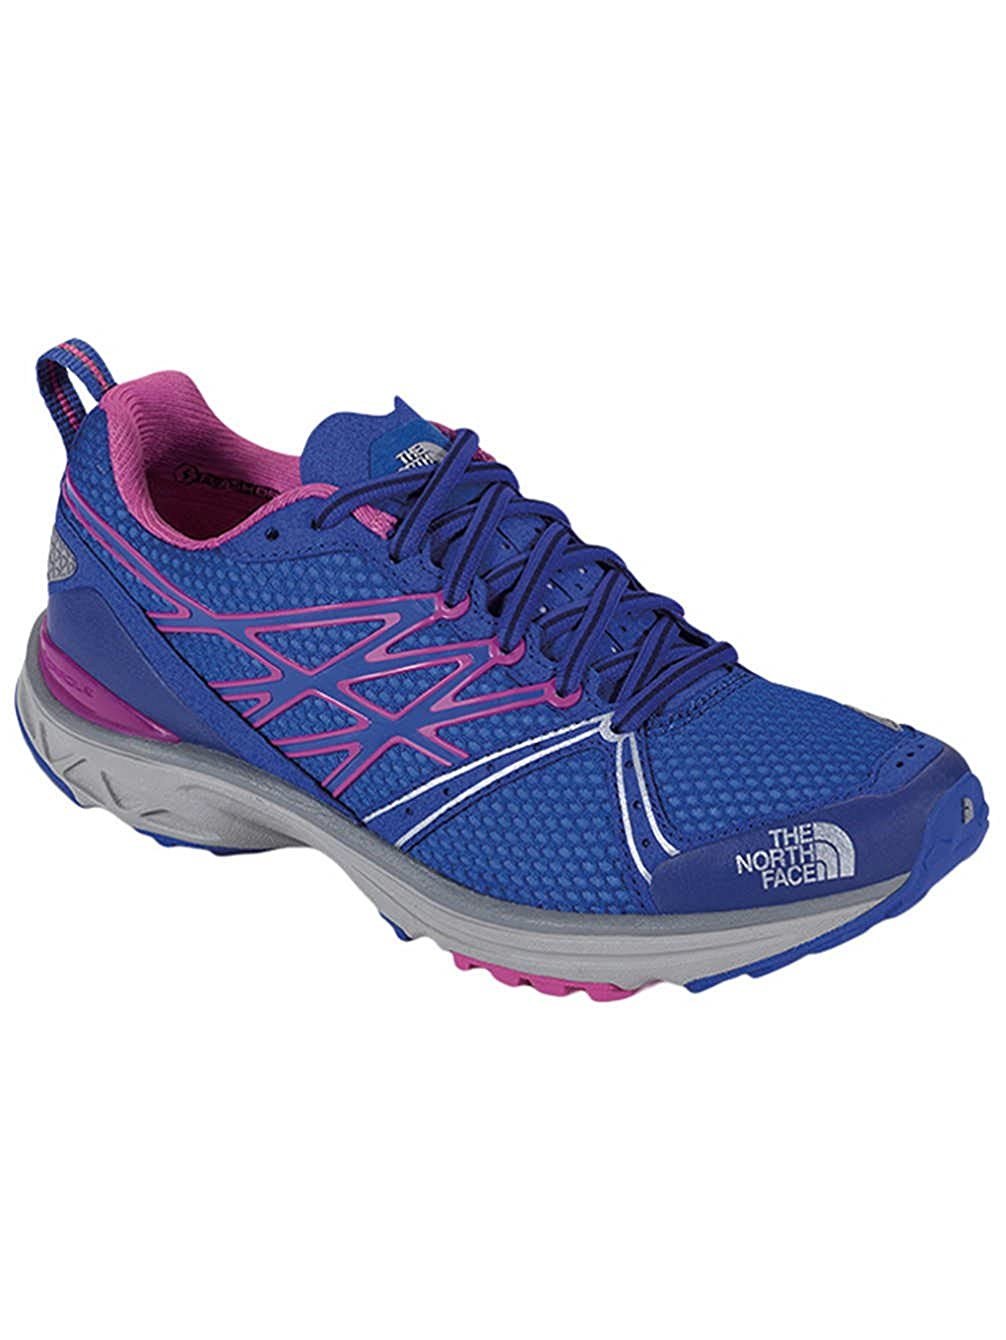 THE NORTH FACE Damen Turnschuhe Single Track Hayasa II Turnschuhe damen